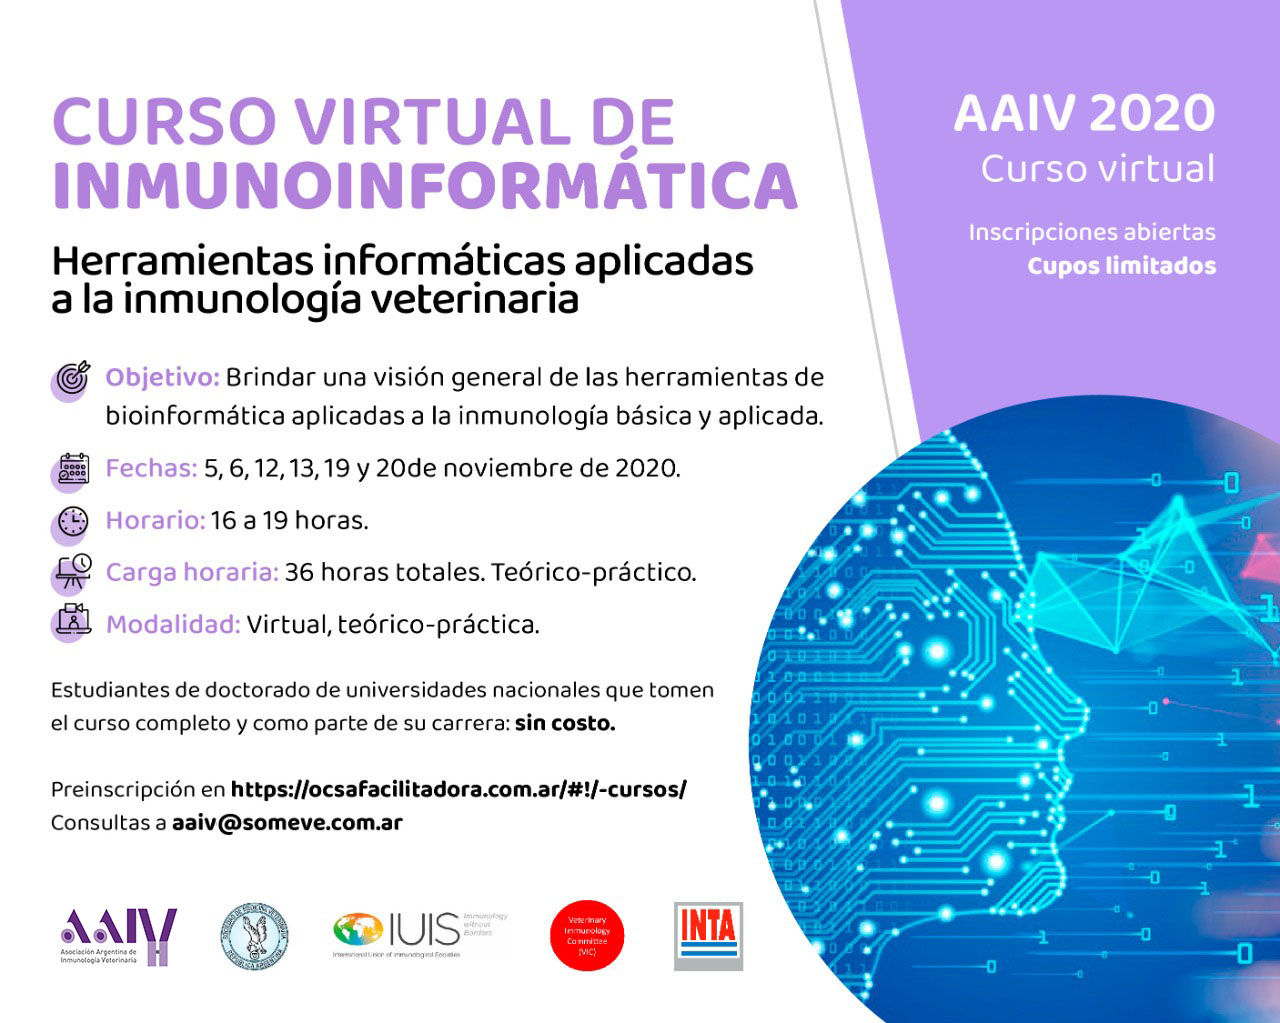 CURSO VIRTUAL DE INMUNOINFORMÁTICA